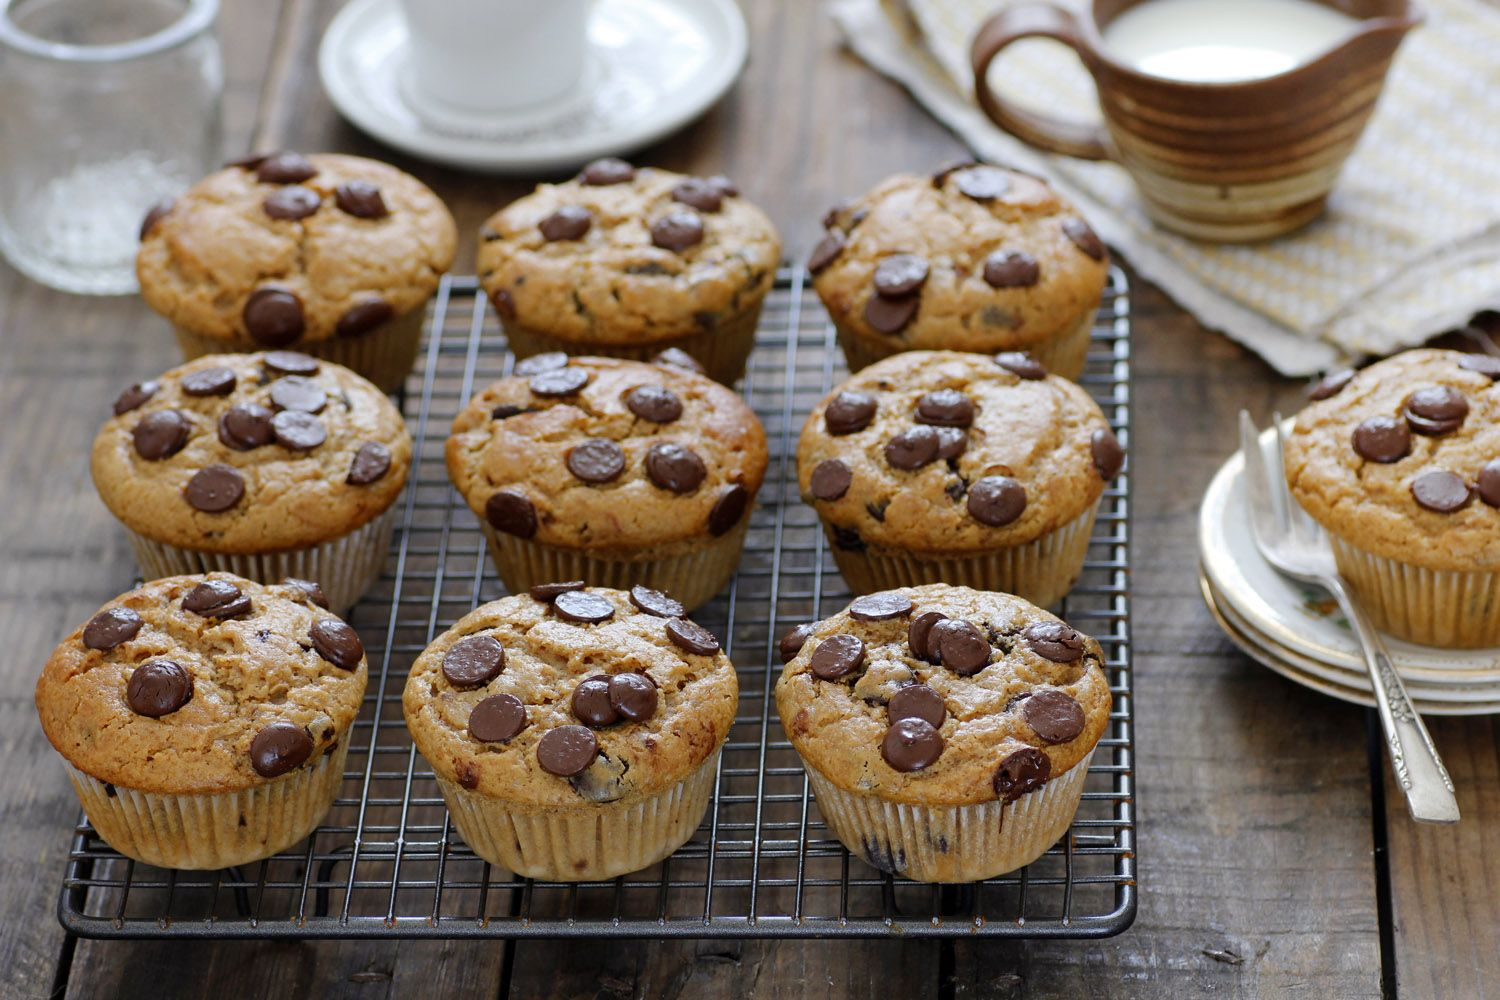 Chocolate Chip Muffins with Coffee and Praline